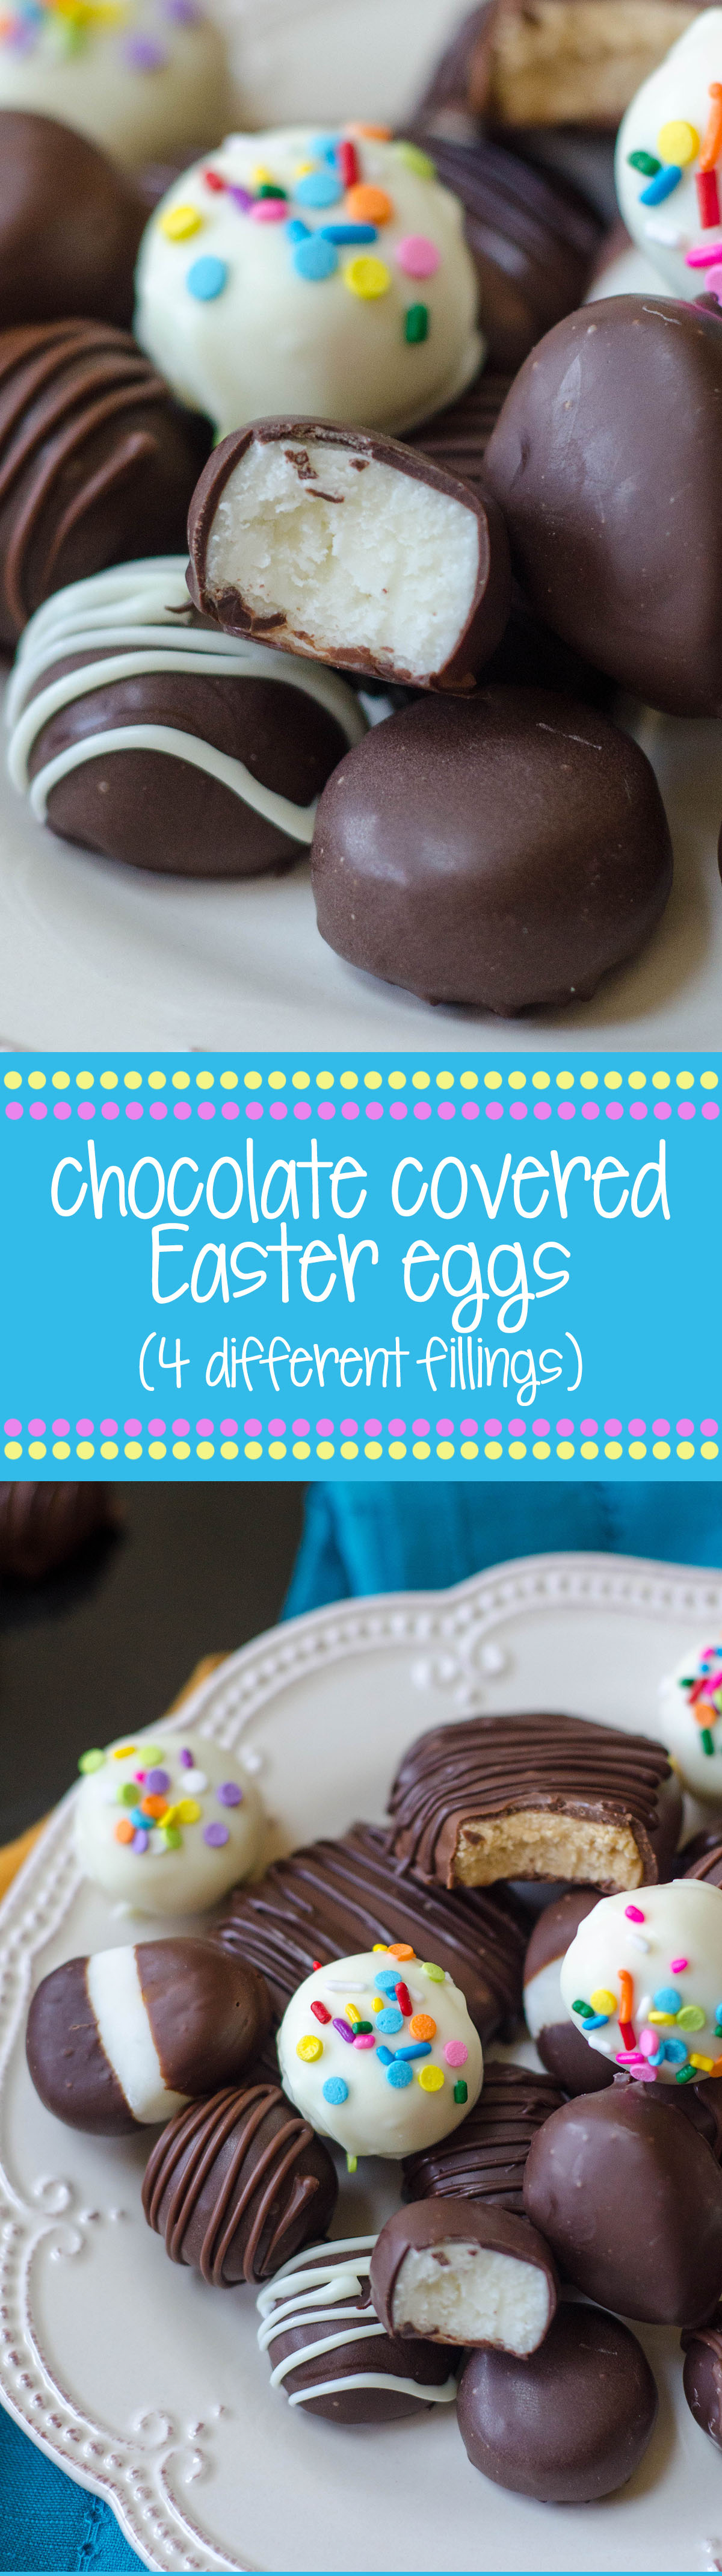 Making your own buttercream eggs from scratch is MUCH easier than you think it is. Classic vanilla, funfetti, coconut cream, and peanut butter eggs or rounds dipped in chocolate are just what your Easter needs!